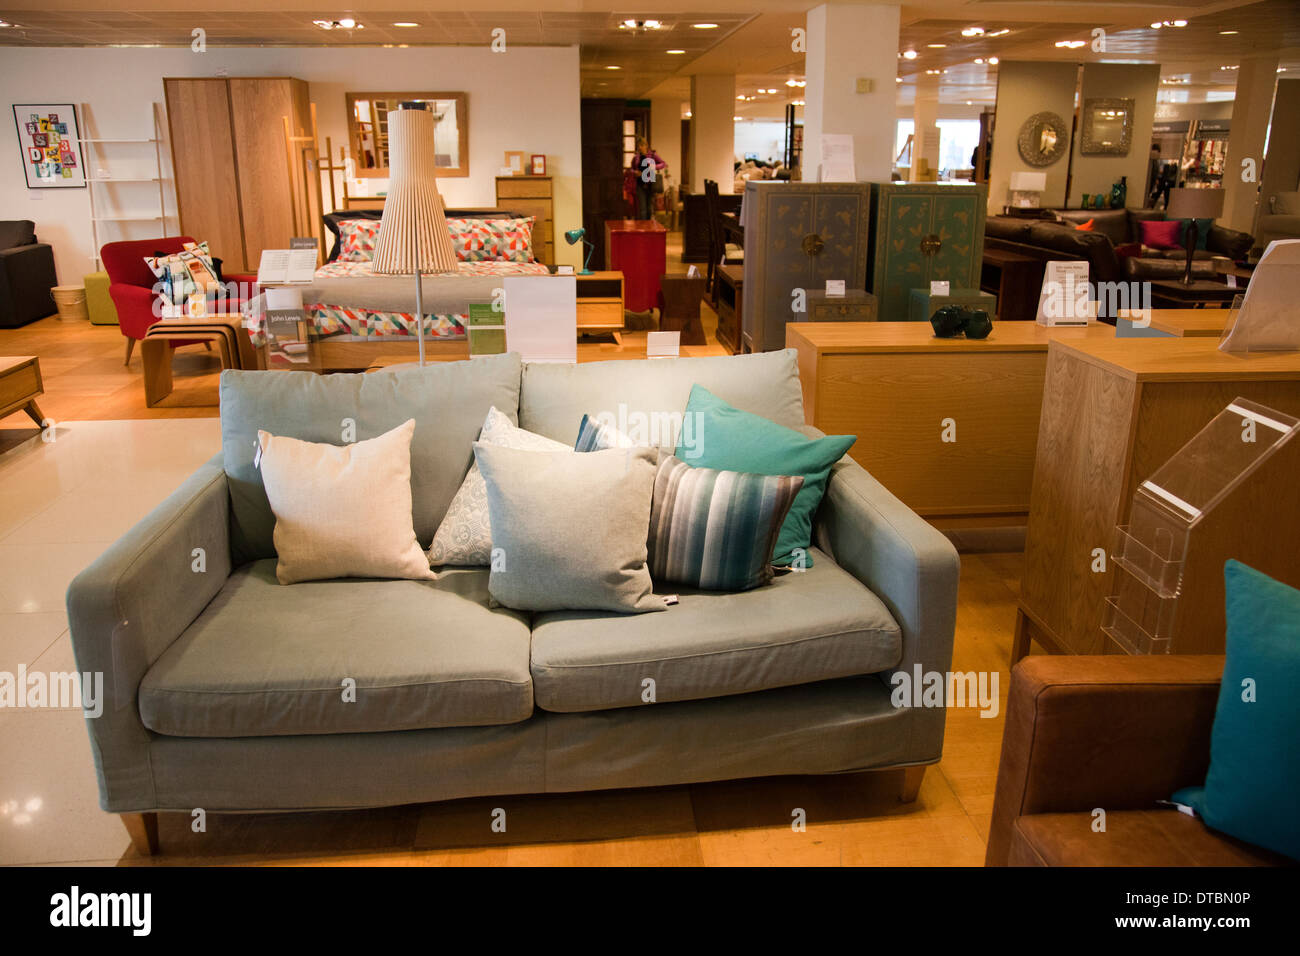 Furniture showroom uk stock photos furniture showroom uk for Department stores that sell furniture